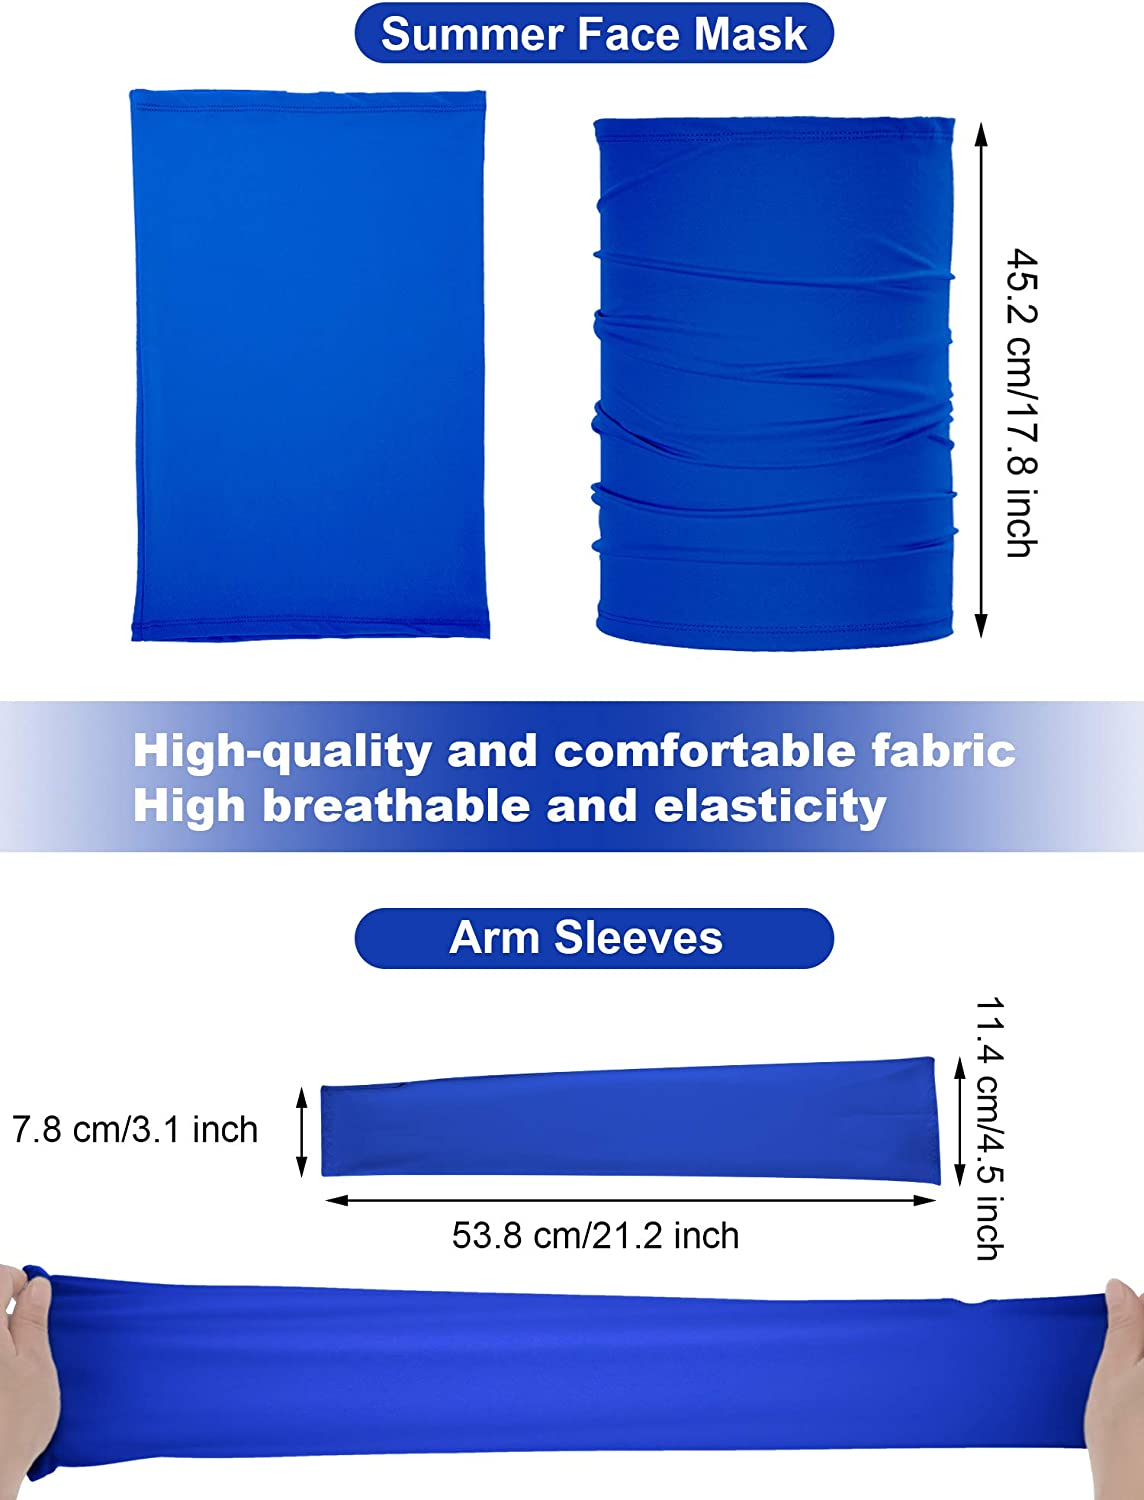 UV Protection Neck Gaiter and Sleeves for Outdoor Summer Bandana Face Mask Cooling Arm Sleeves